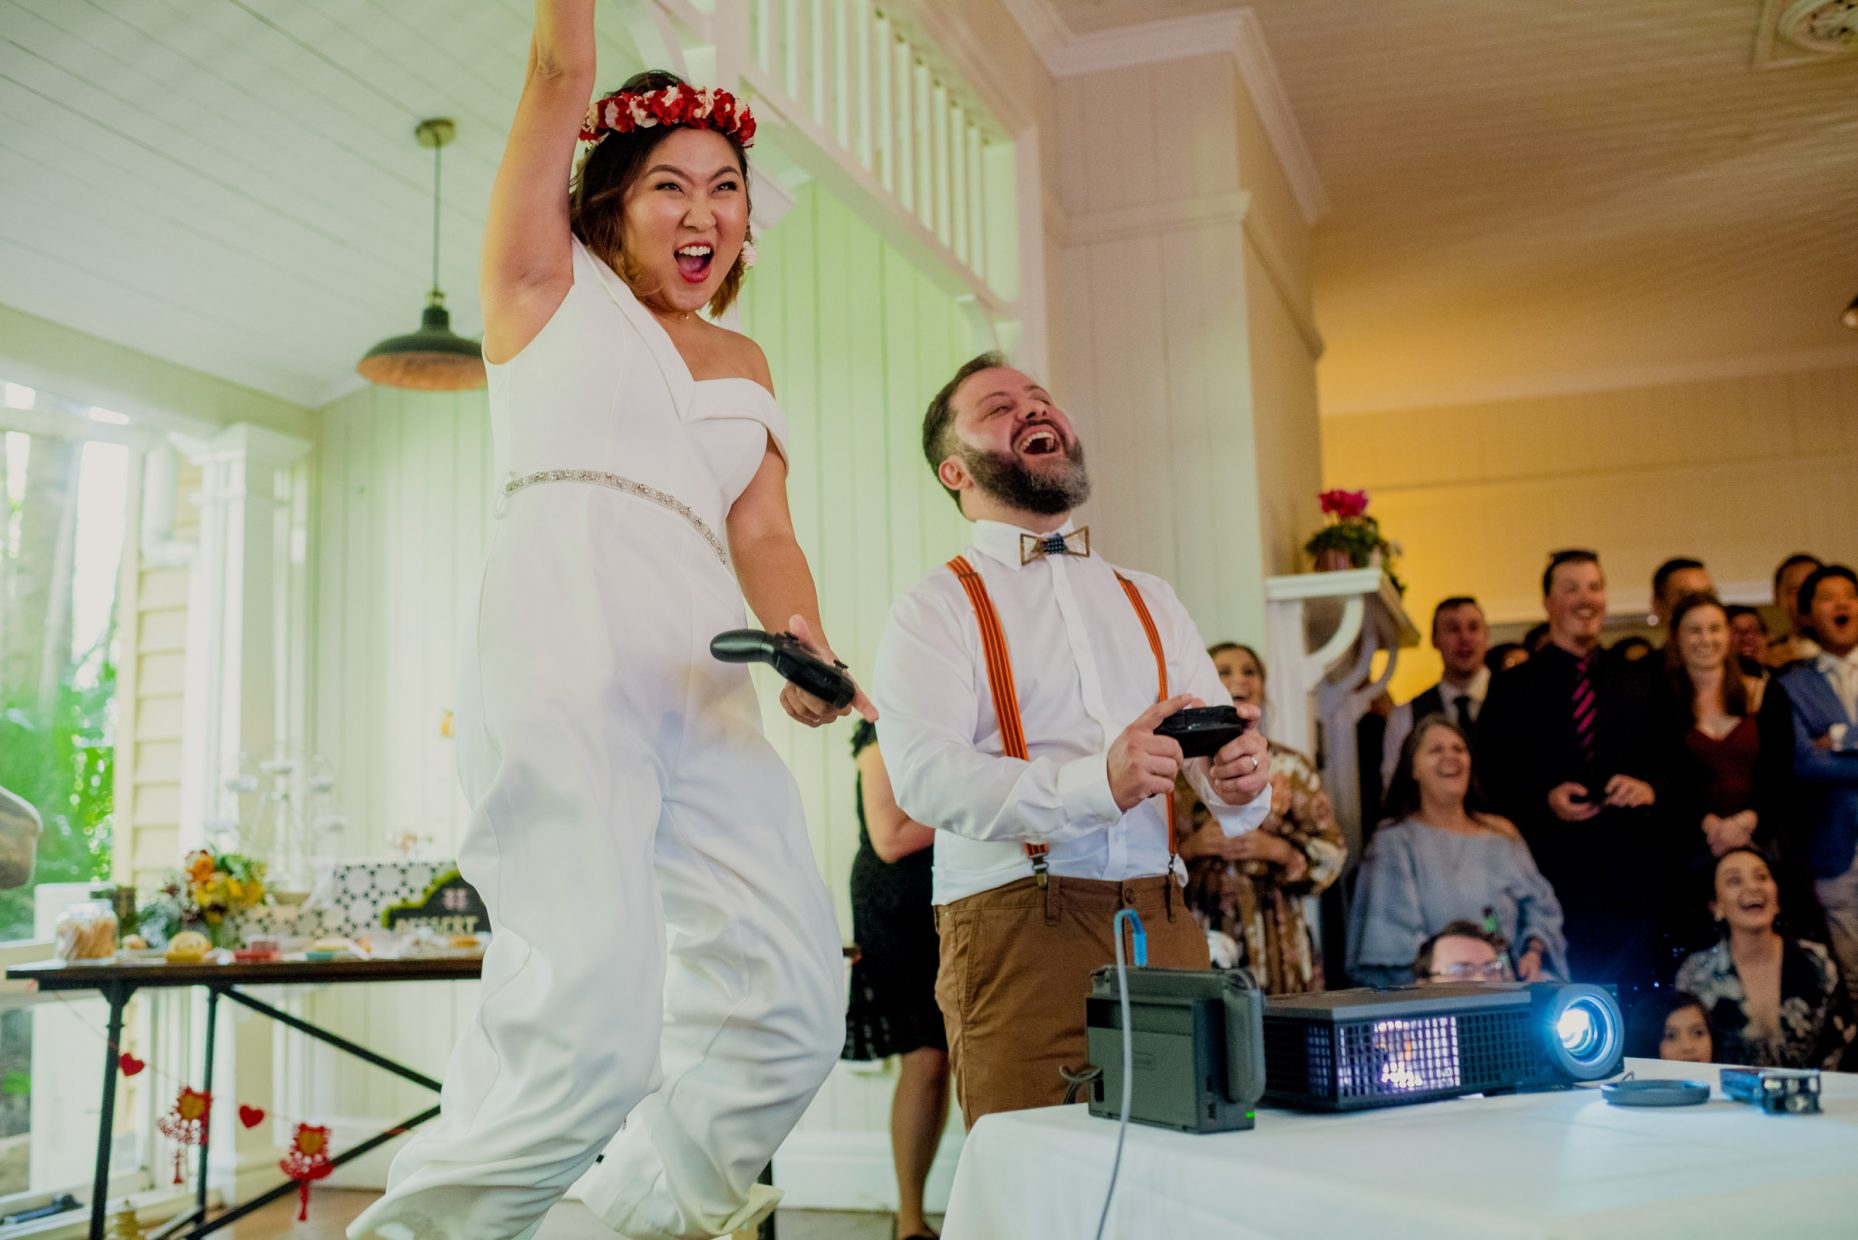 An asian woman in a white jumpsuit jumps in the air with a videogame controller as a man next to her laughs